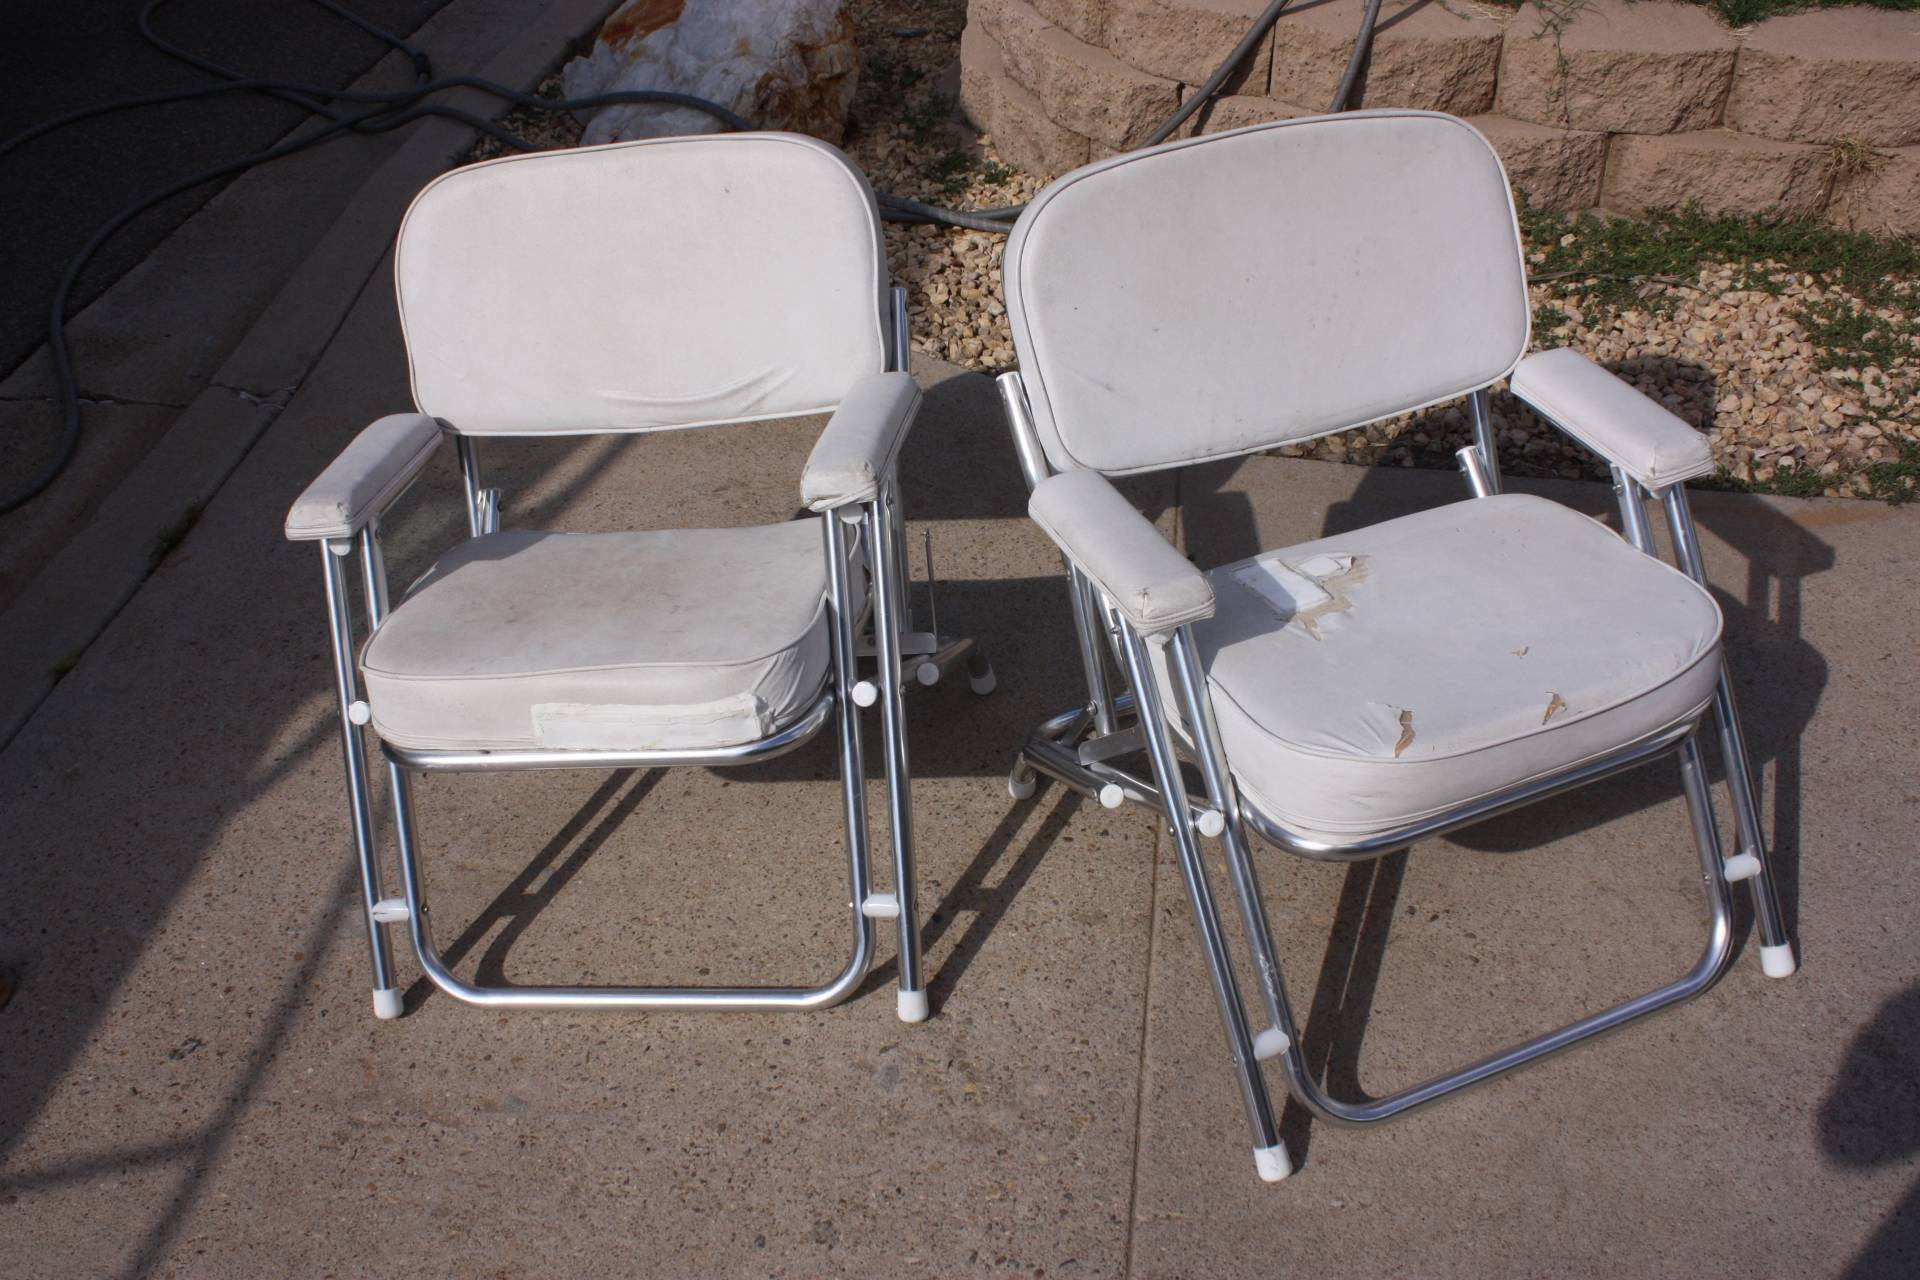 west marine chairs aluminum lawn chair deck will be great with a little tlc saltwater